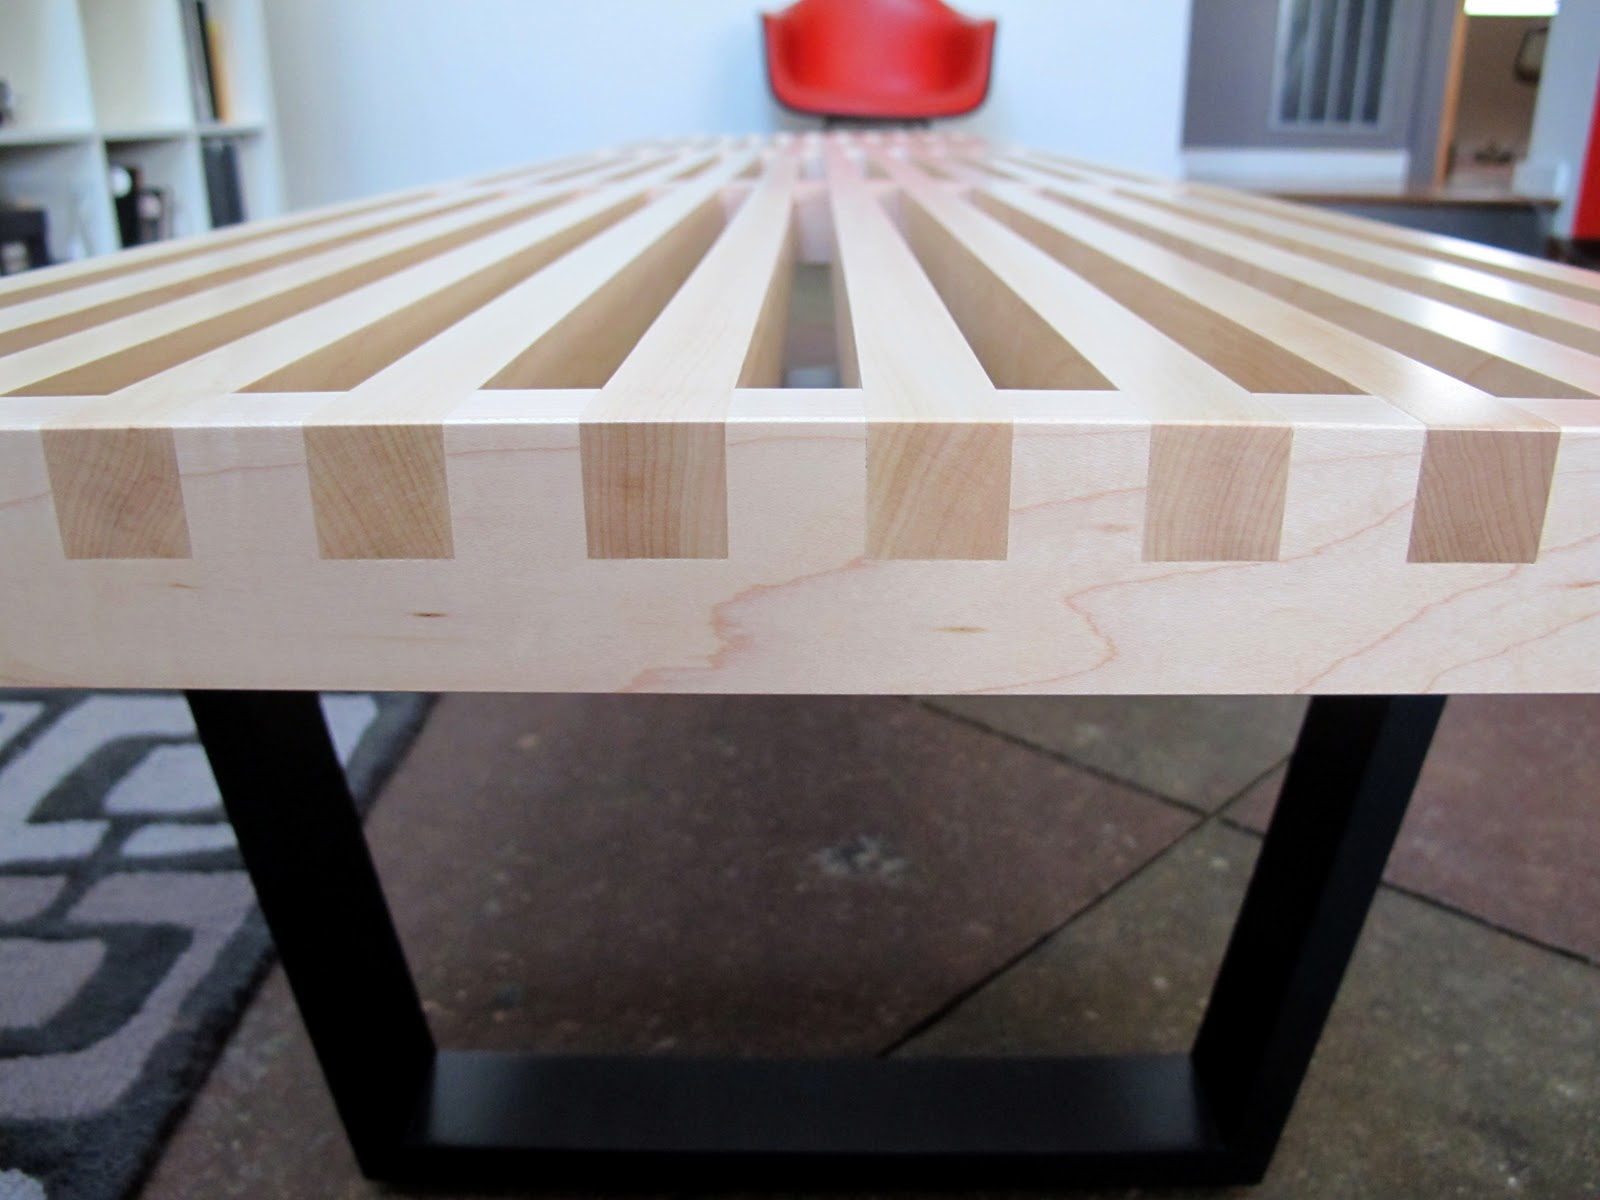 how to join 2 wooden dowels